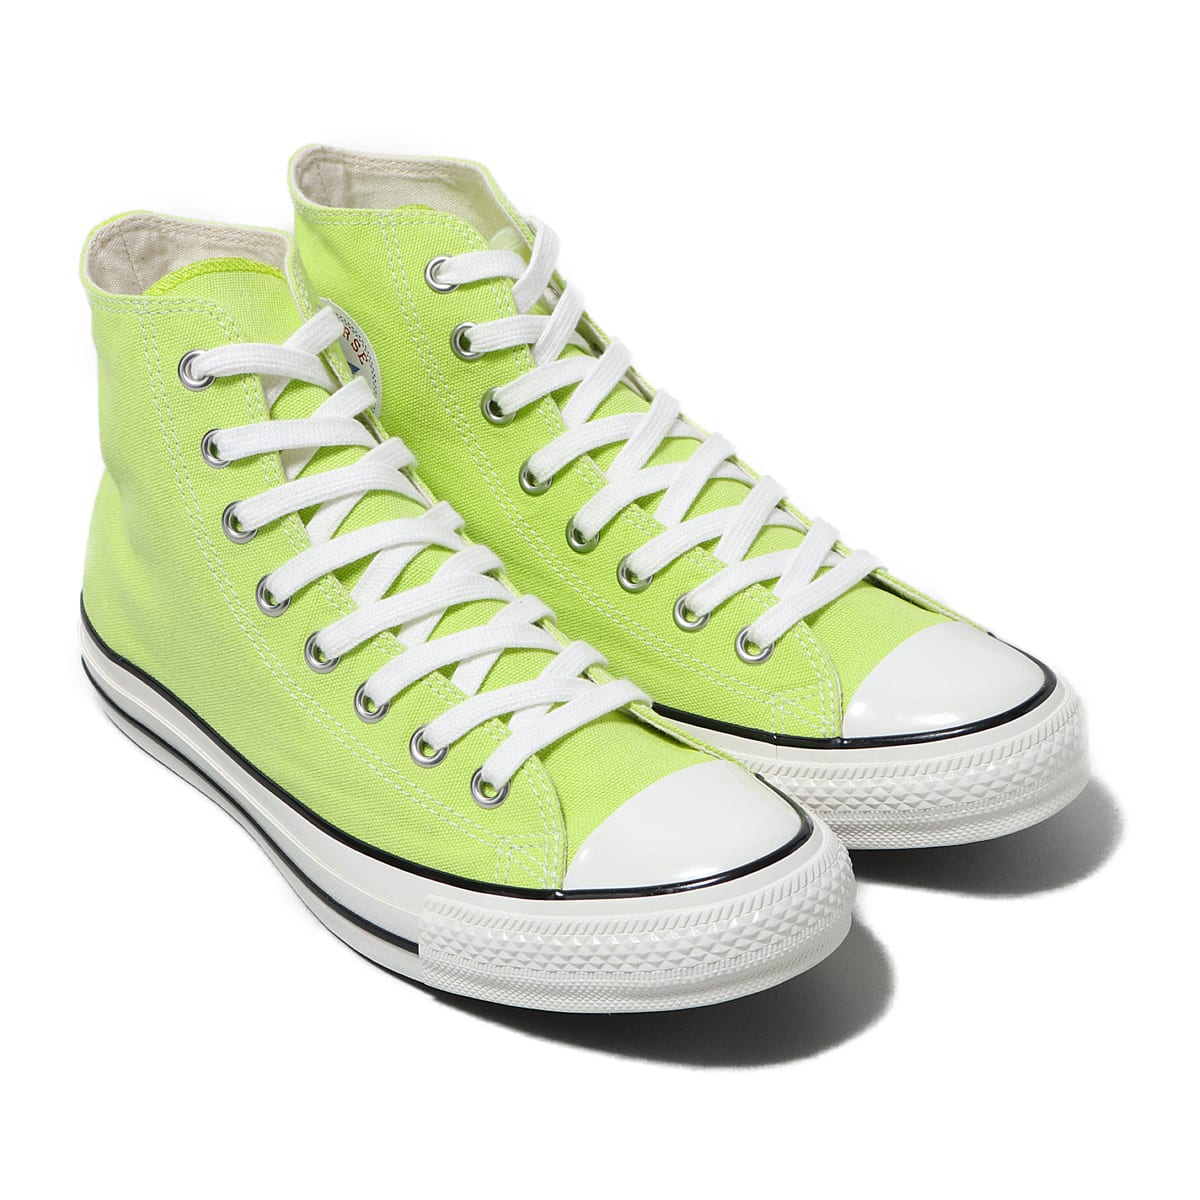 CONVERSE ALL STAR US NEONCOLORS HI LIME 20SS-S_photo_large